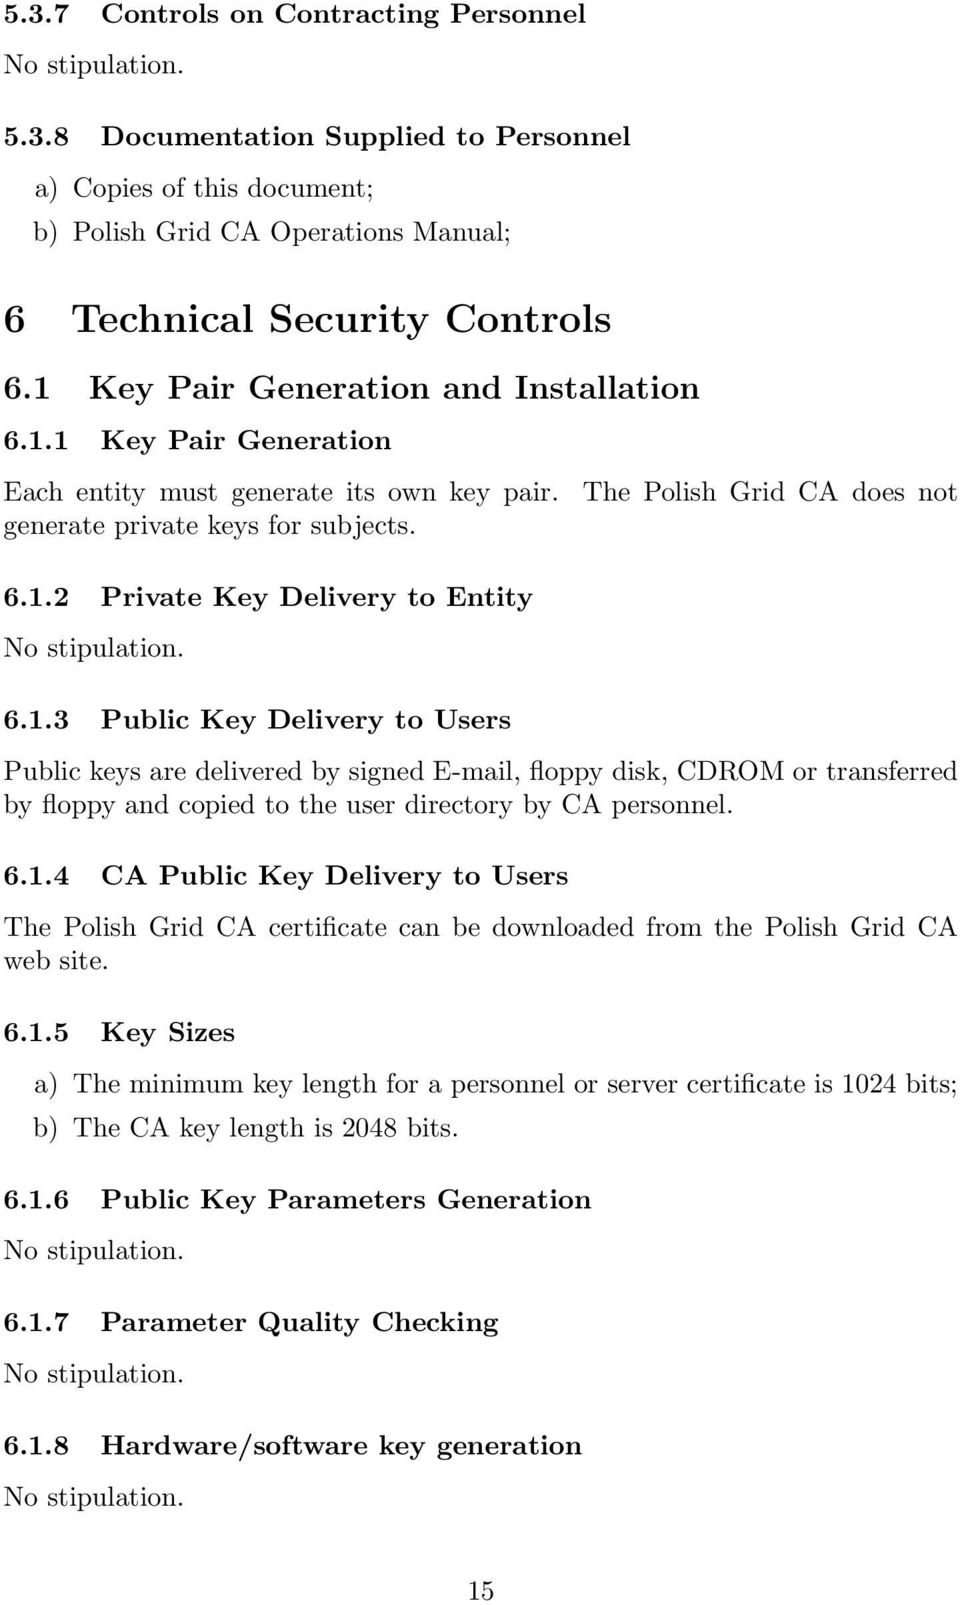 6.1.4 CA Public Key Delivery to Users The Polish Grid CA certificate can be downloaded from the Polish Grid CA web site. 6.1.5 Key Sizes a) The minimum key length for a personnel or server certificate is 1024 bits; b) The CA key length is 2048 bits.